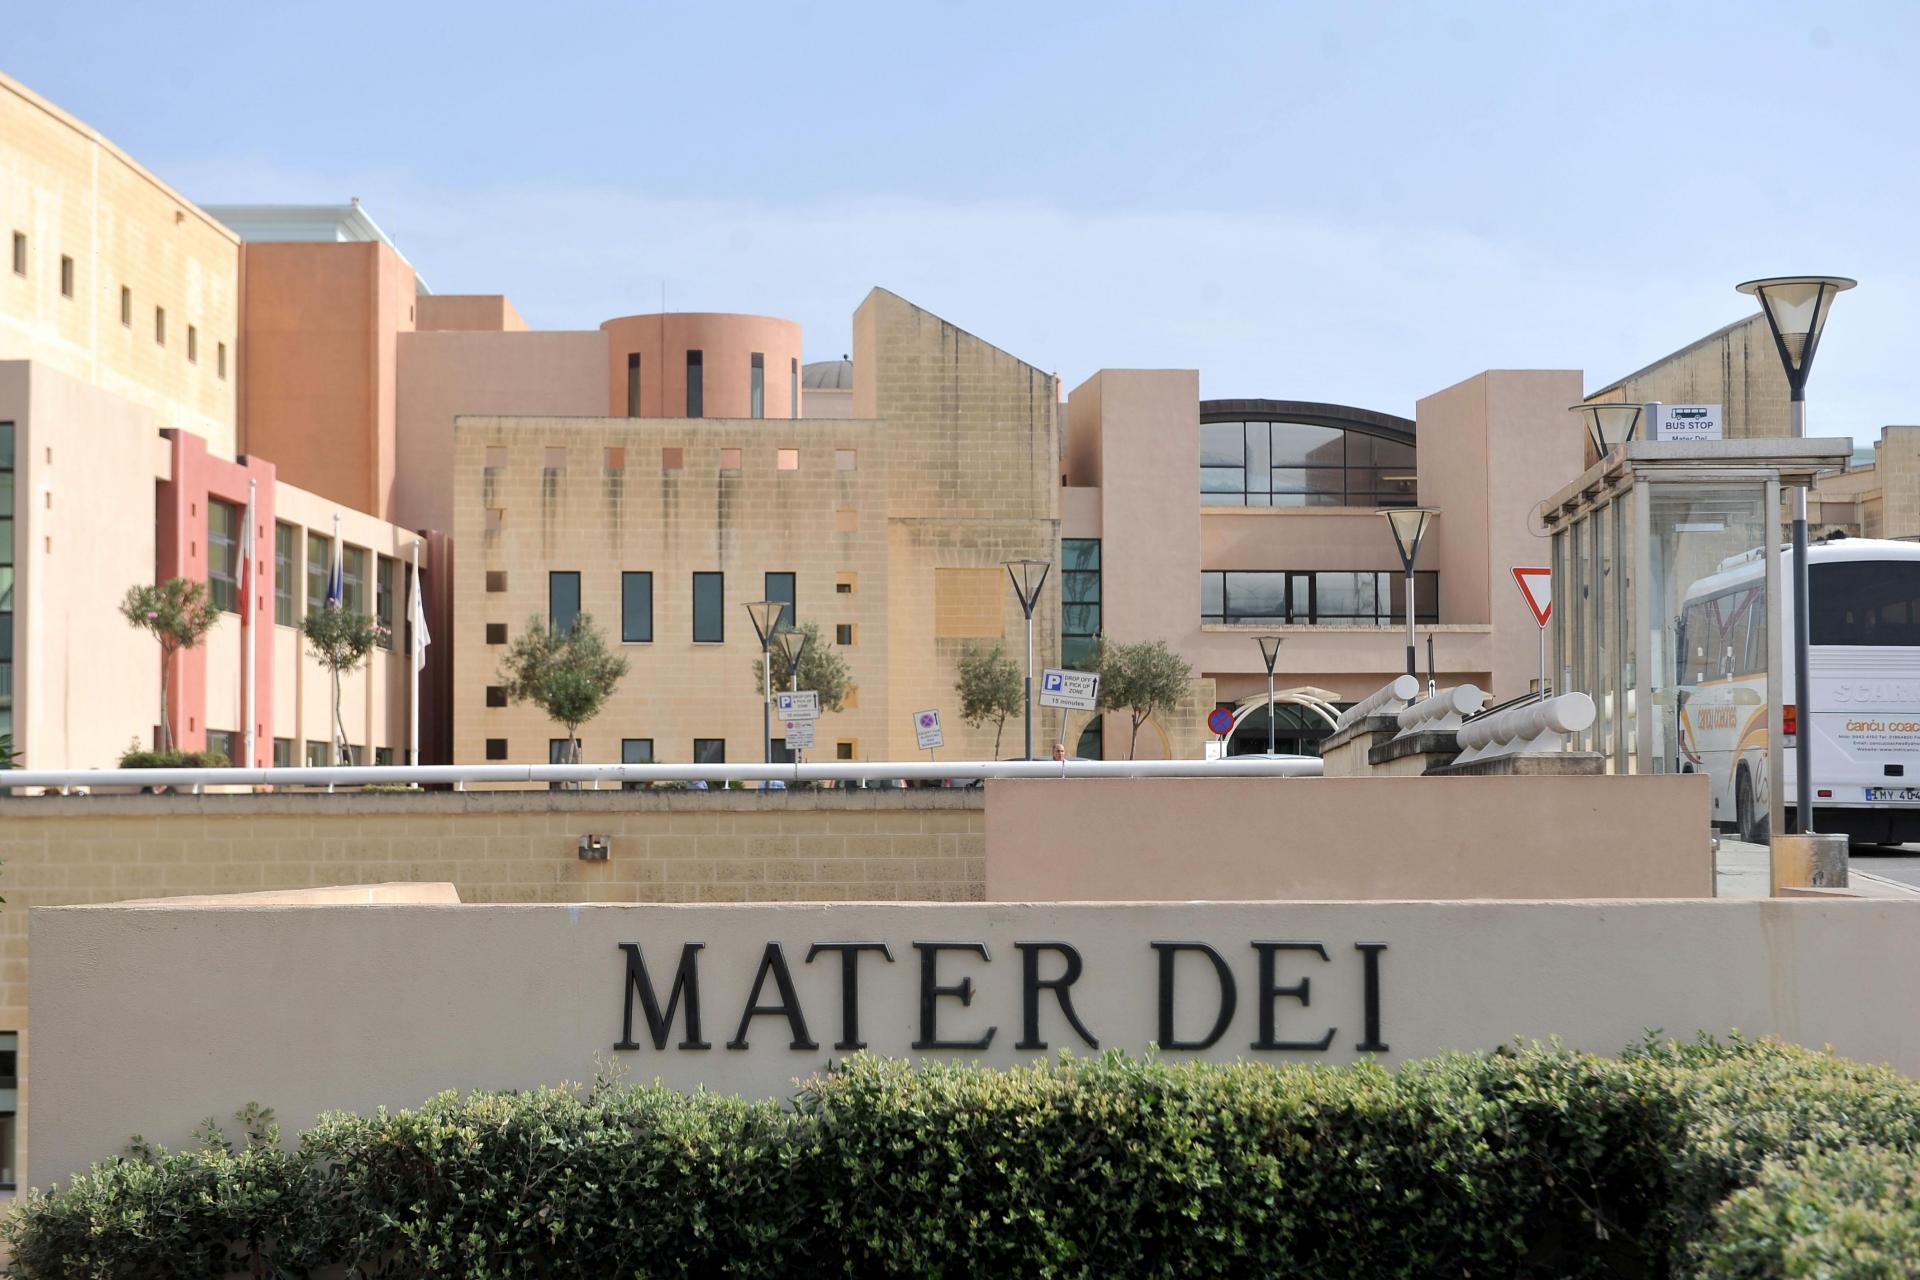 Watch: Water leaks at Mater Dei Hospital cause operations to be suspended